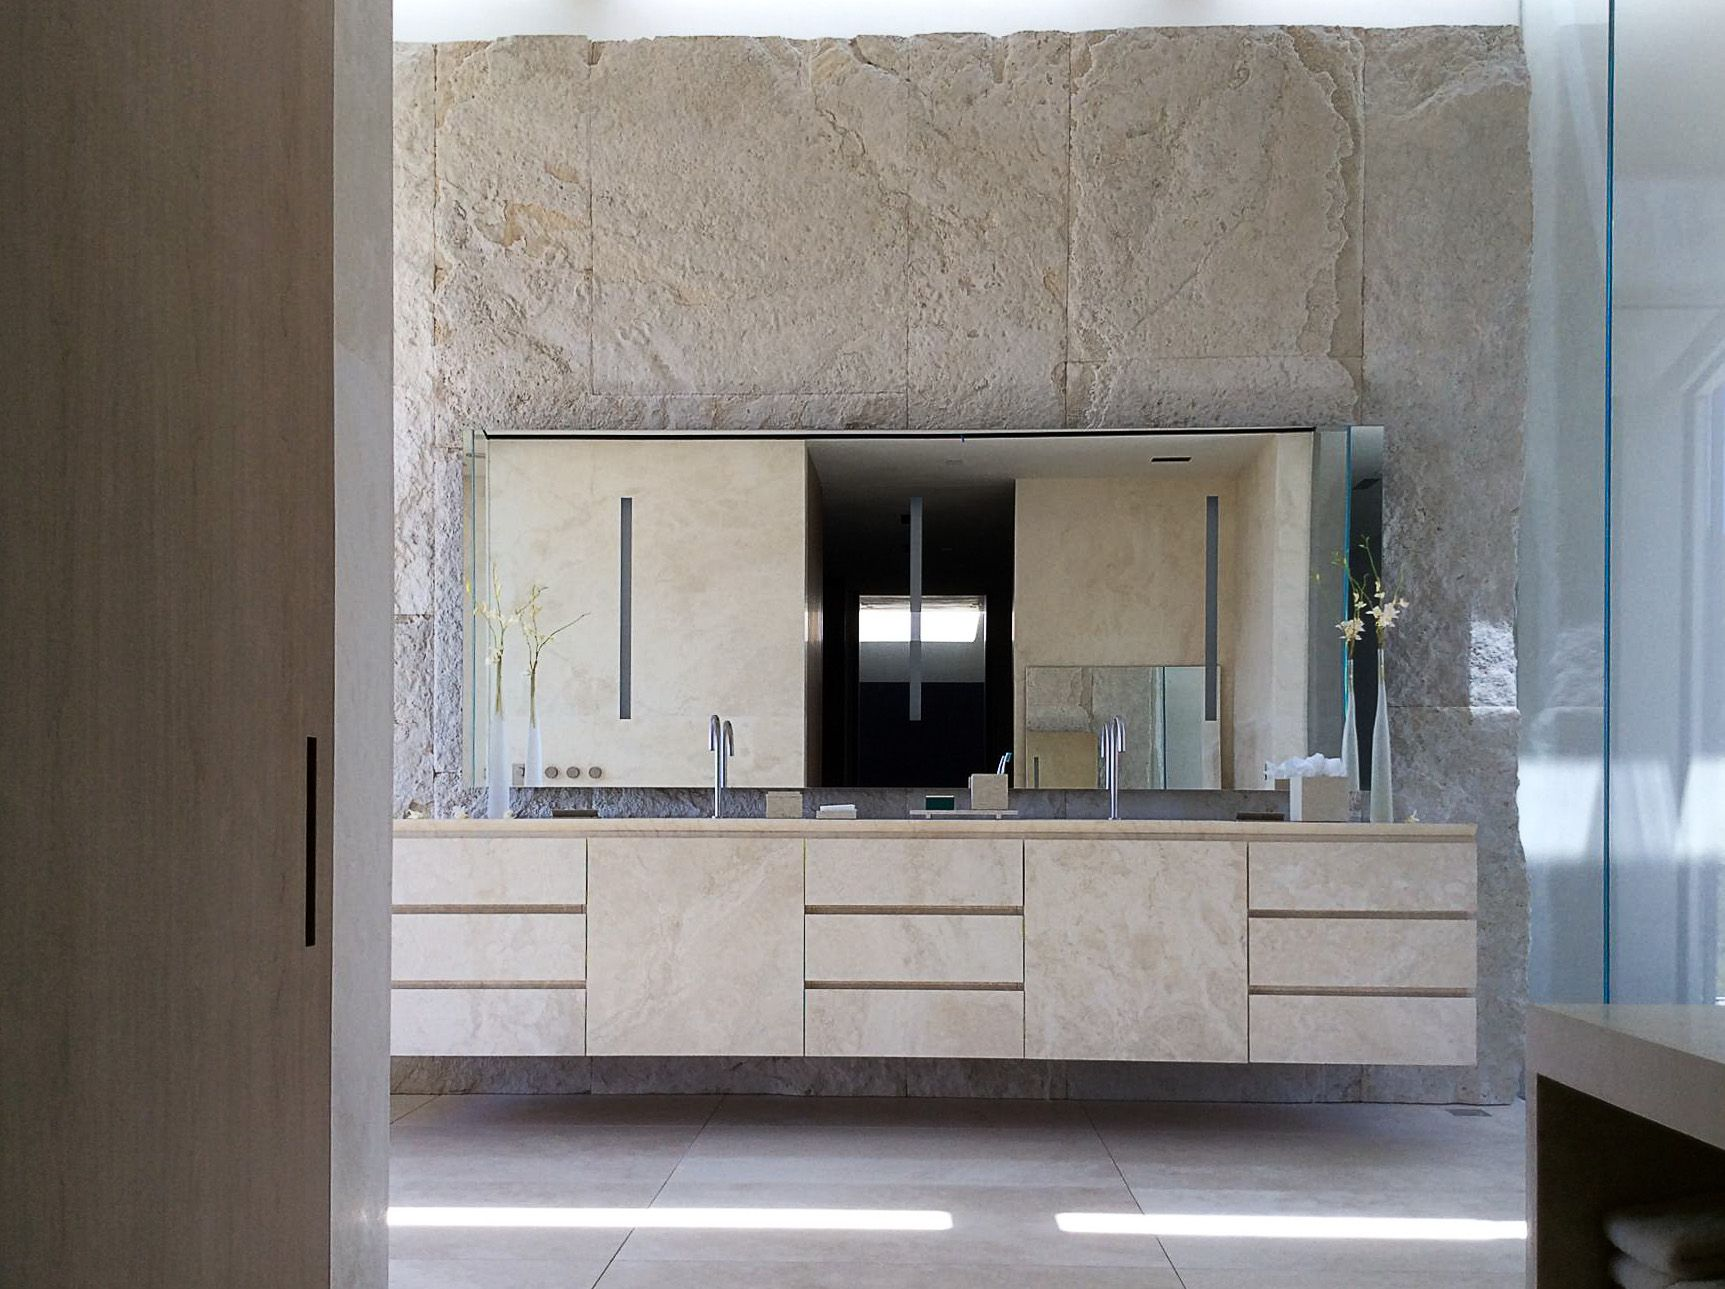 Travertine Bathroom Villa Los Angeles Rios Clementi Project Lorraine